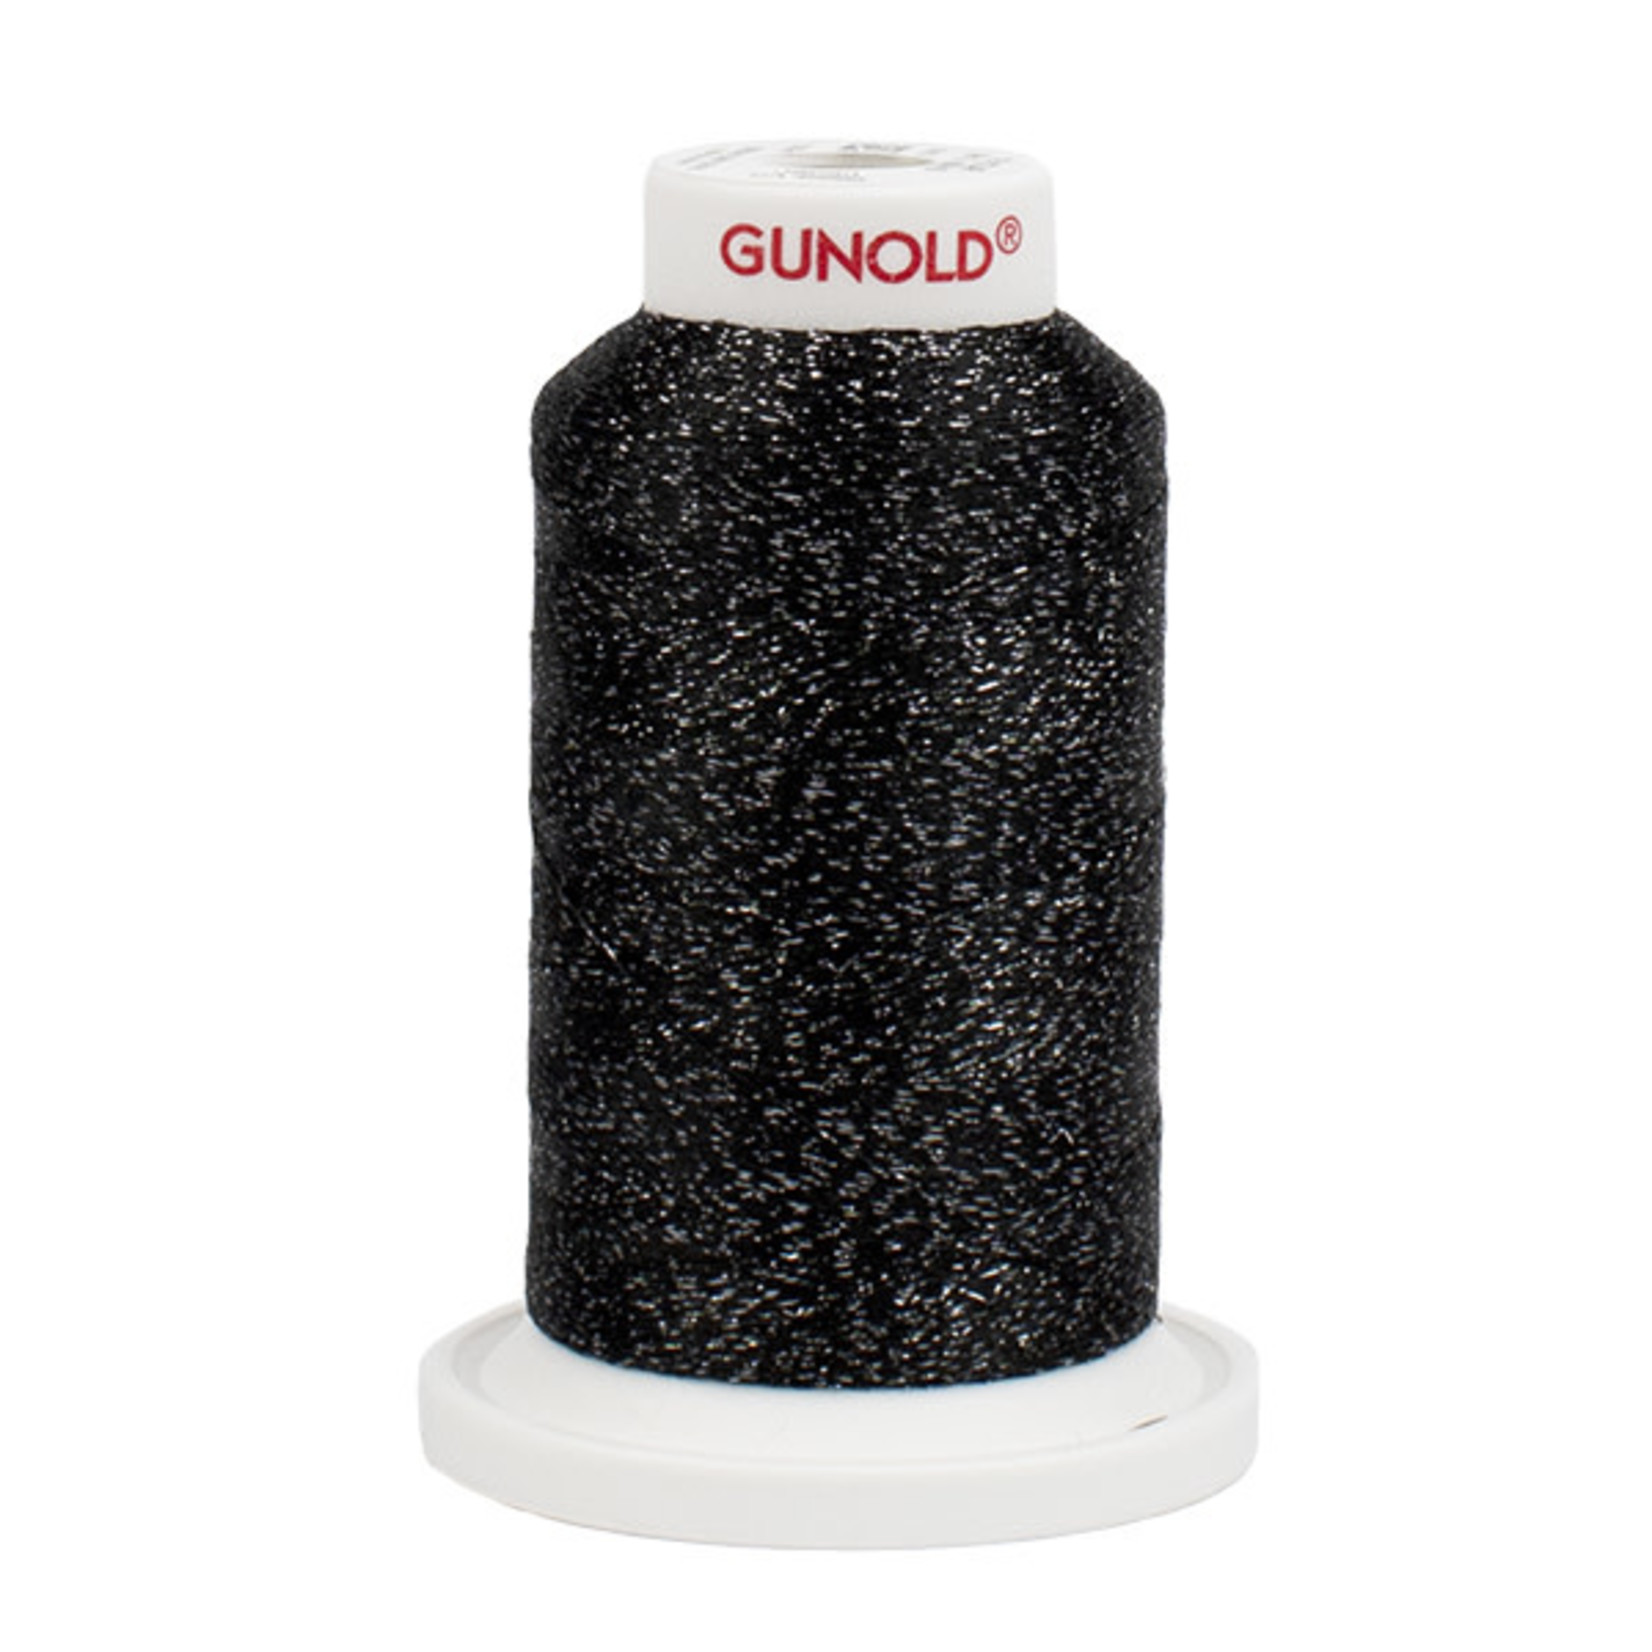 Gunold Poly Sparkle™ (Star™) Mini-King Cone 1,100 YD, 30 Wt, Black with Pewter Sparkle 50615